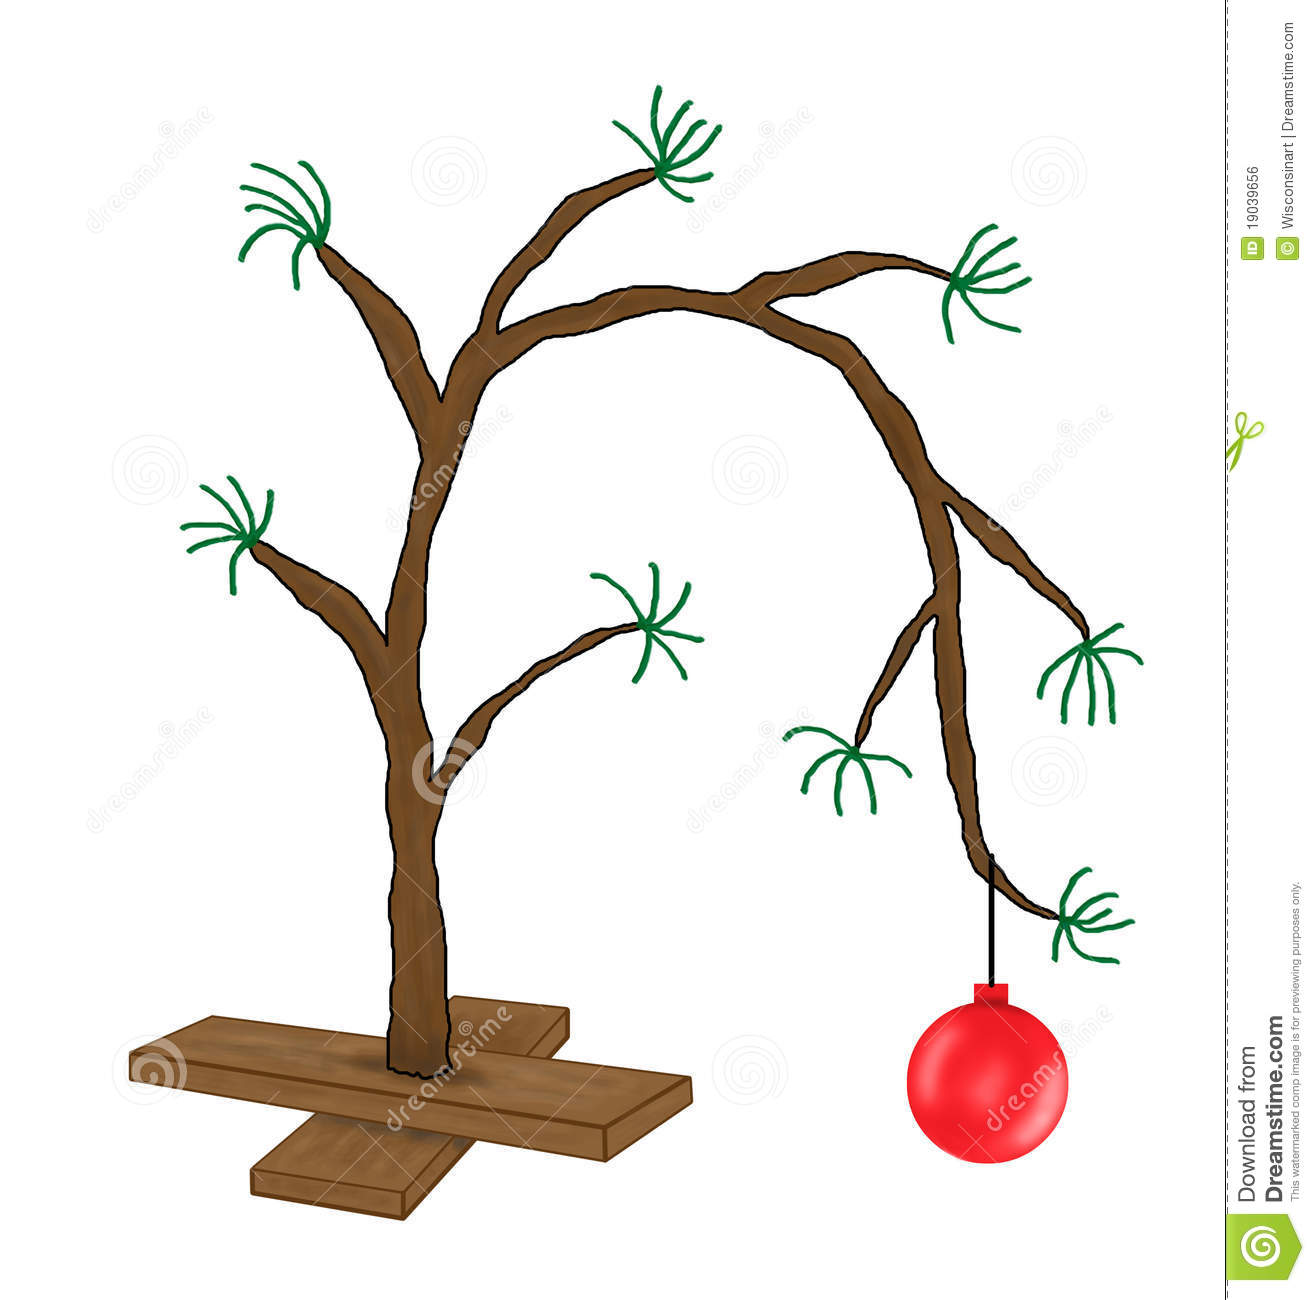 Charlie brown tree clipart 9 » Clipart Station.